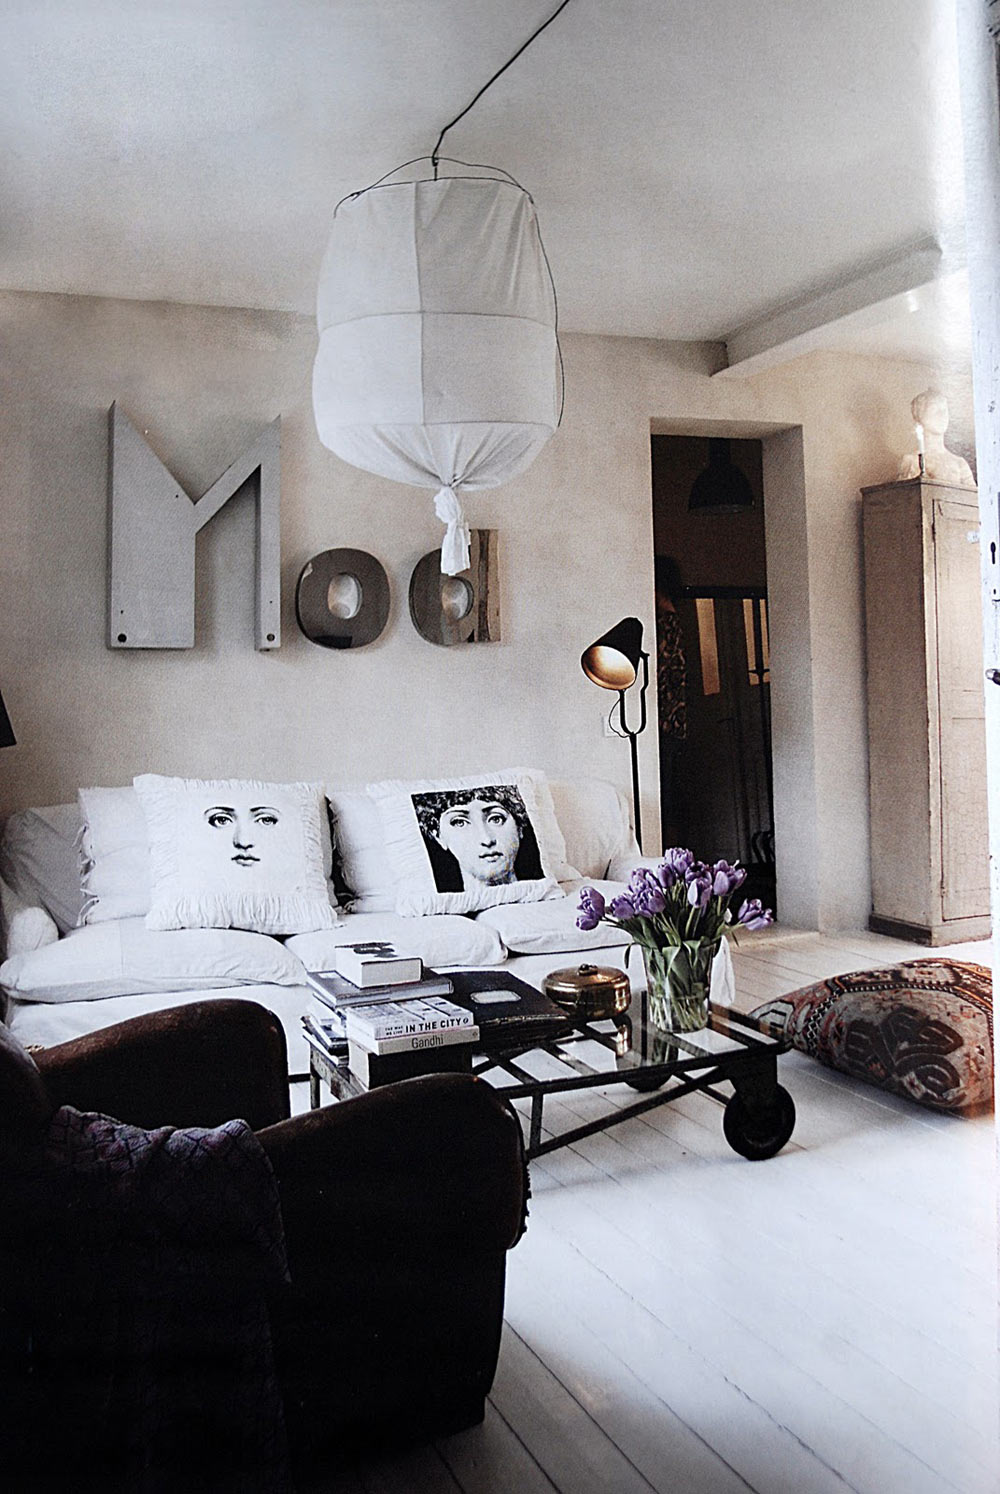 Marie-Olsson-Nylander-Interior-Inspiration-Oracle-Fox.3